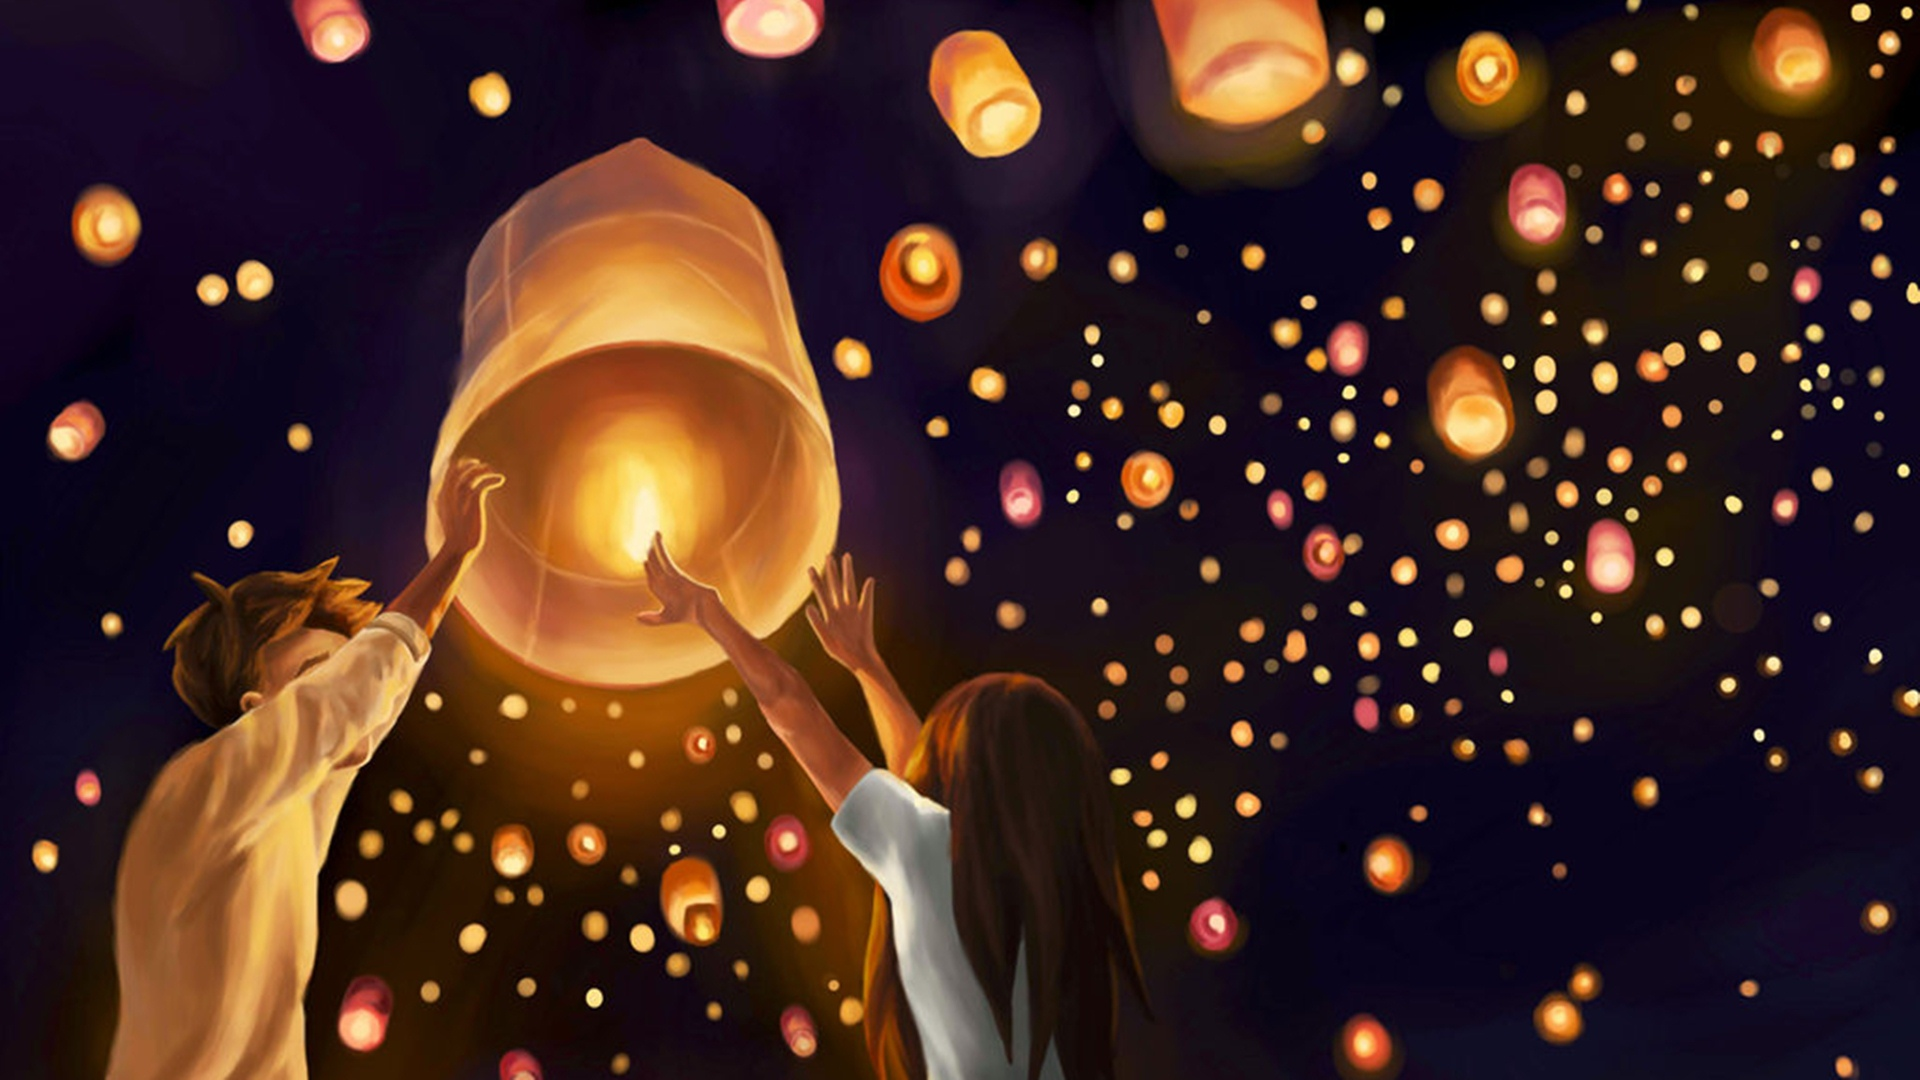 Floating Lanterns Festival Wallpapers Posted By Ryan Tremblay